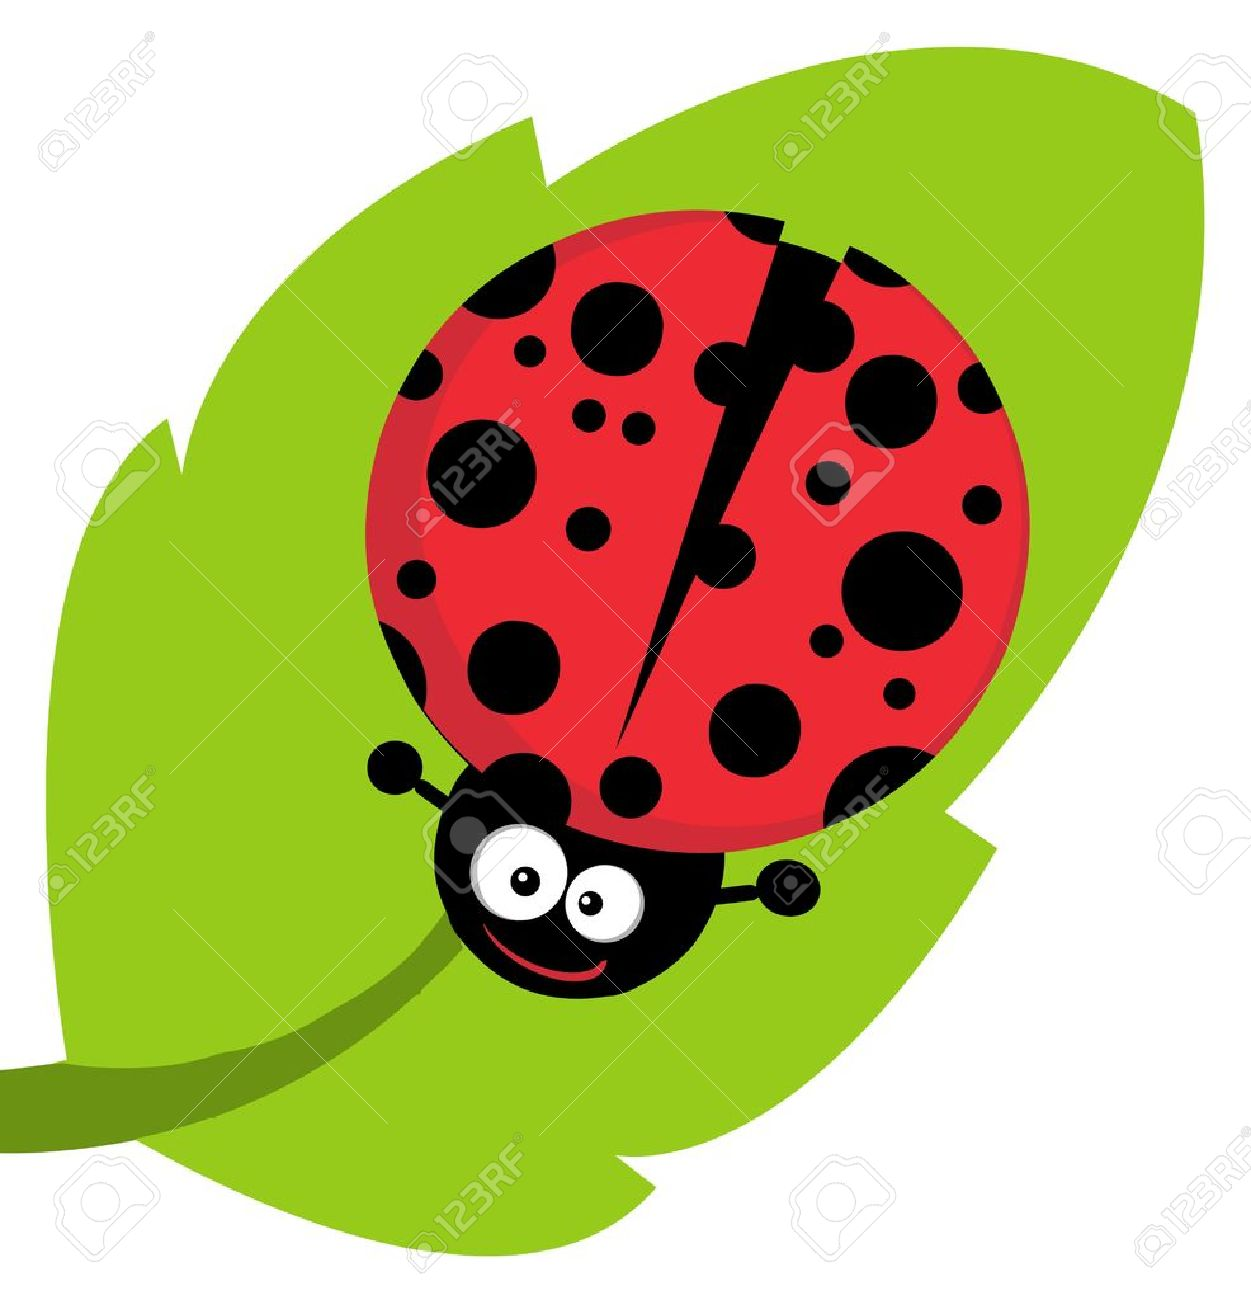 Cute Lady Bug On Leaf Royalty Free Cliparts, Vectors, And Stock ... for Clipart Ladybug On Leaf  570bof